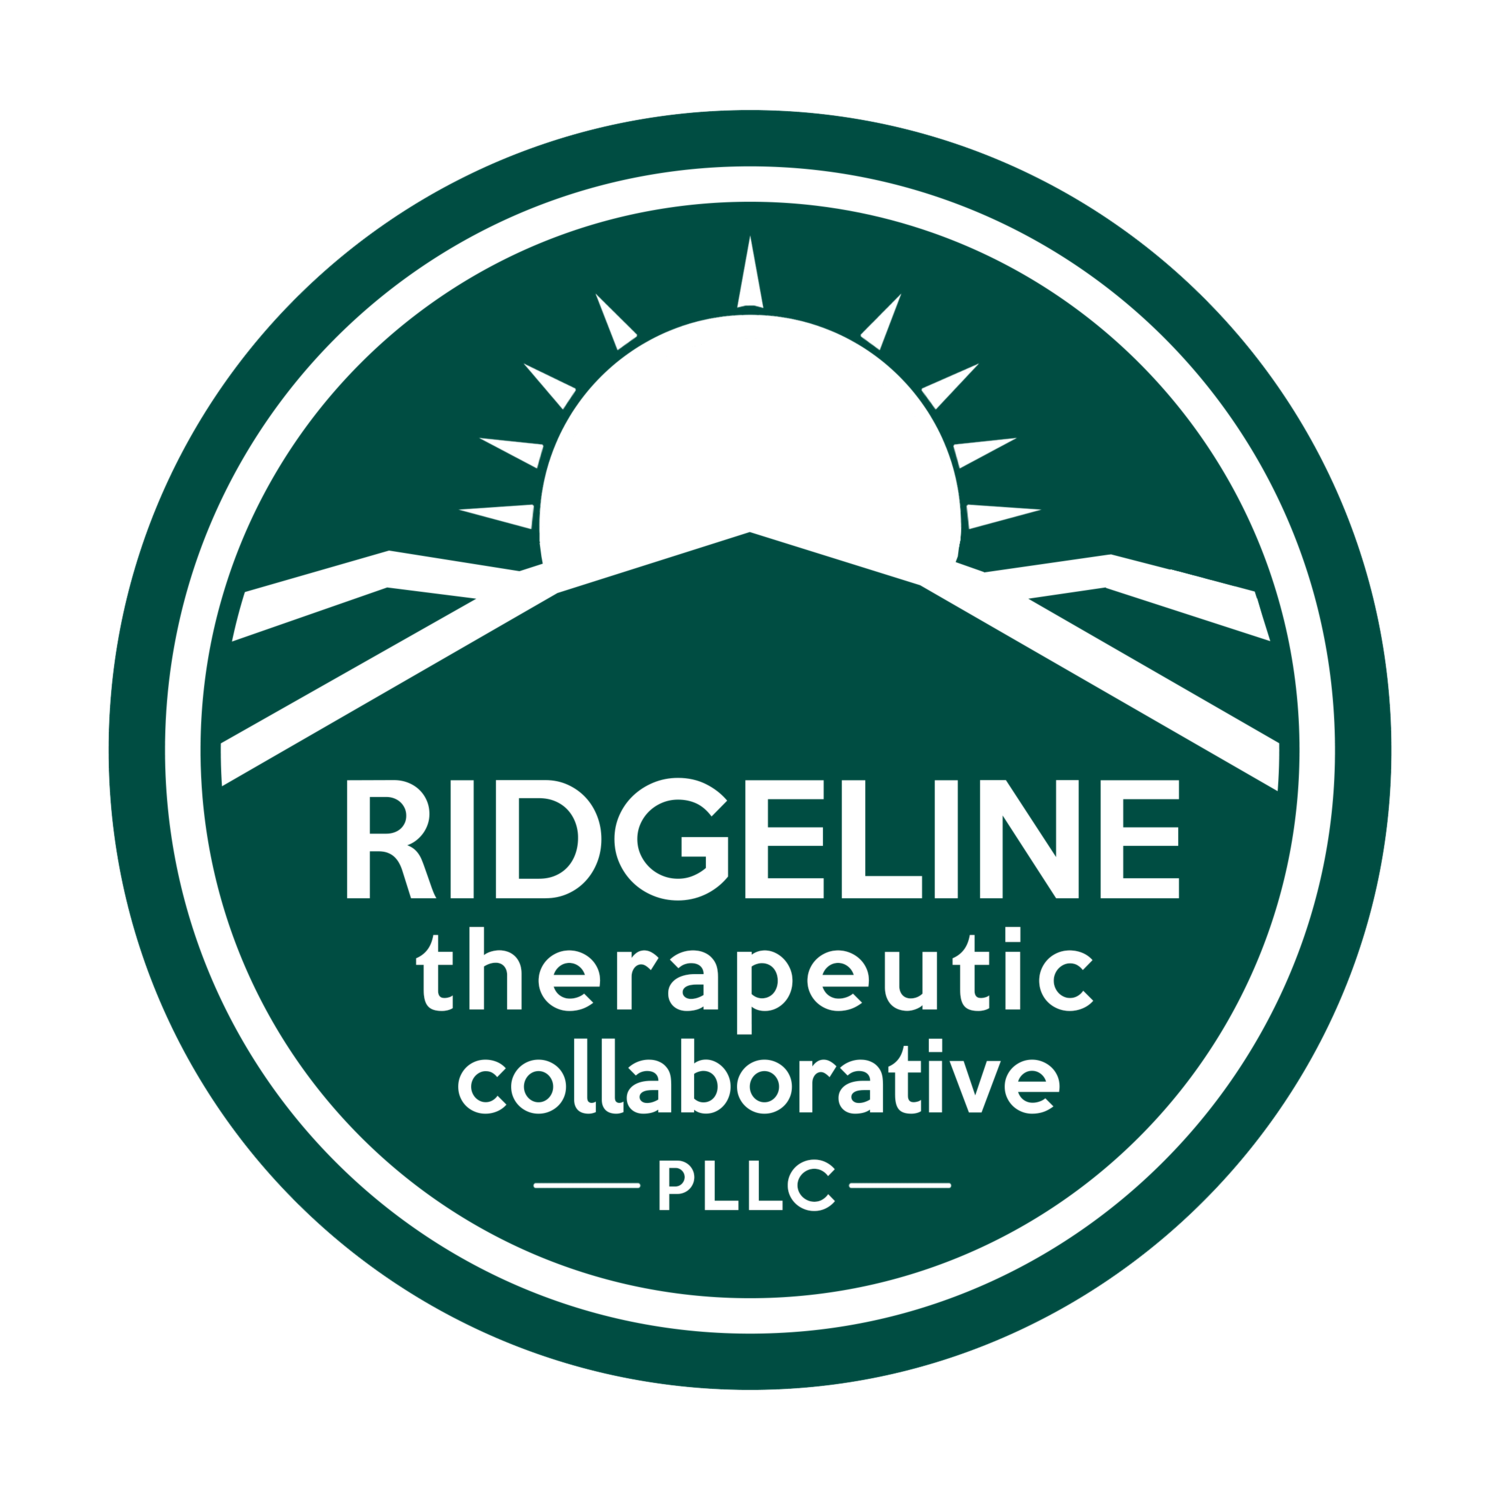 Ridgeline Therapeutic Collaborative, PLLC